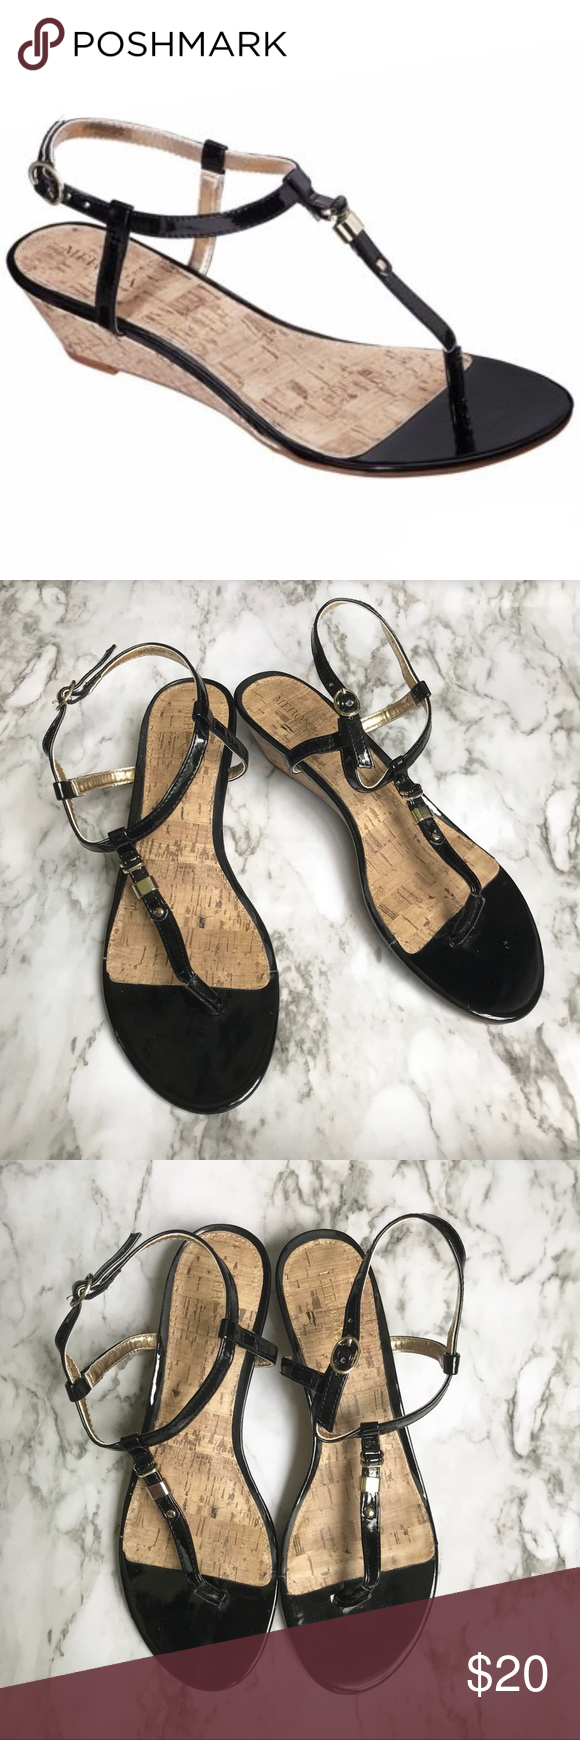 "Merona Etha Cork Low Wedge Sandals These wedge sandals are polished and comfy in black faux patent leather with gold tone hardware. The 1.5"" wedge heel features a cork accent to bring a touch of flair to your look. Approximate Measurements: 1.5"" heel height Material: All Manmade In Excellent Used Condition. Merona Shoes Sandals #lowwedgesandals Merona Etha Cork Low Wedge Sandals These wedge sandals are polished and comfy in black faux patent leather with gold tone hardware. The 1.5"" wedge #lowwedgesandals"